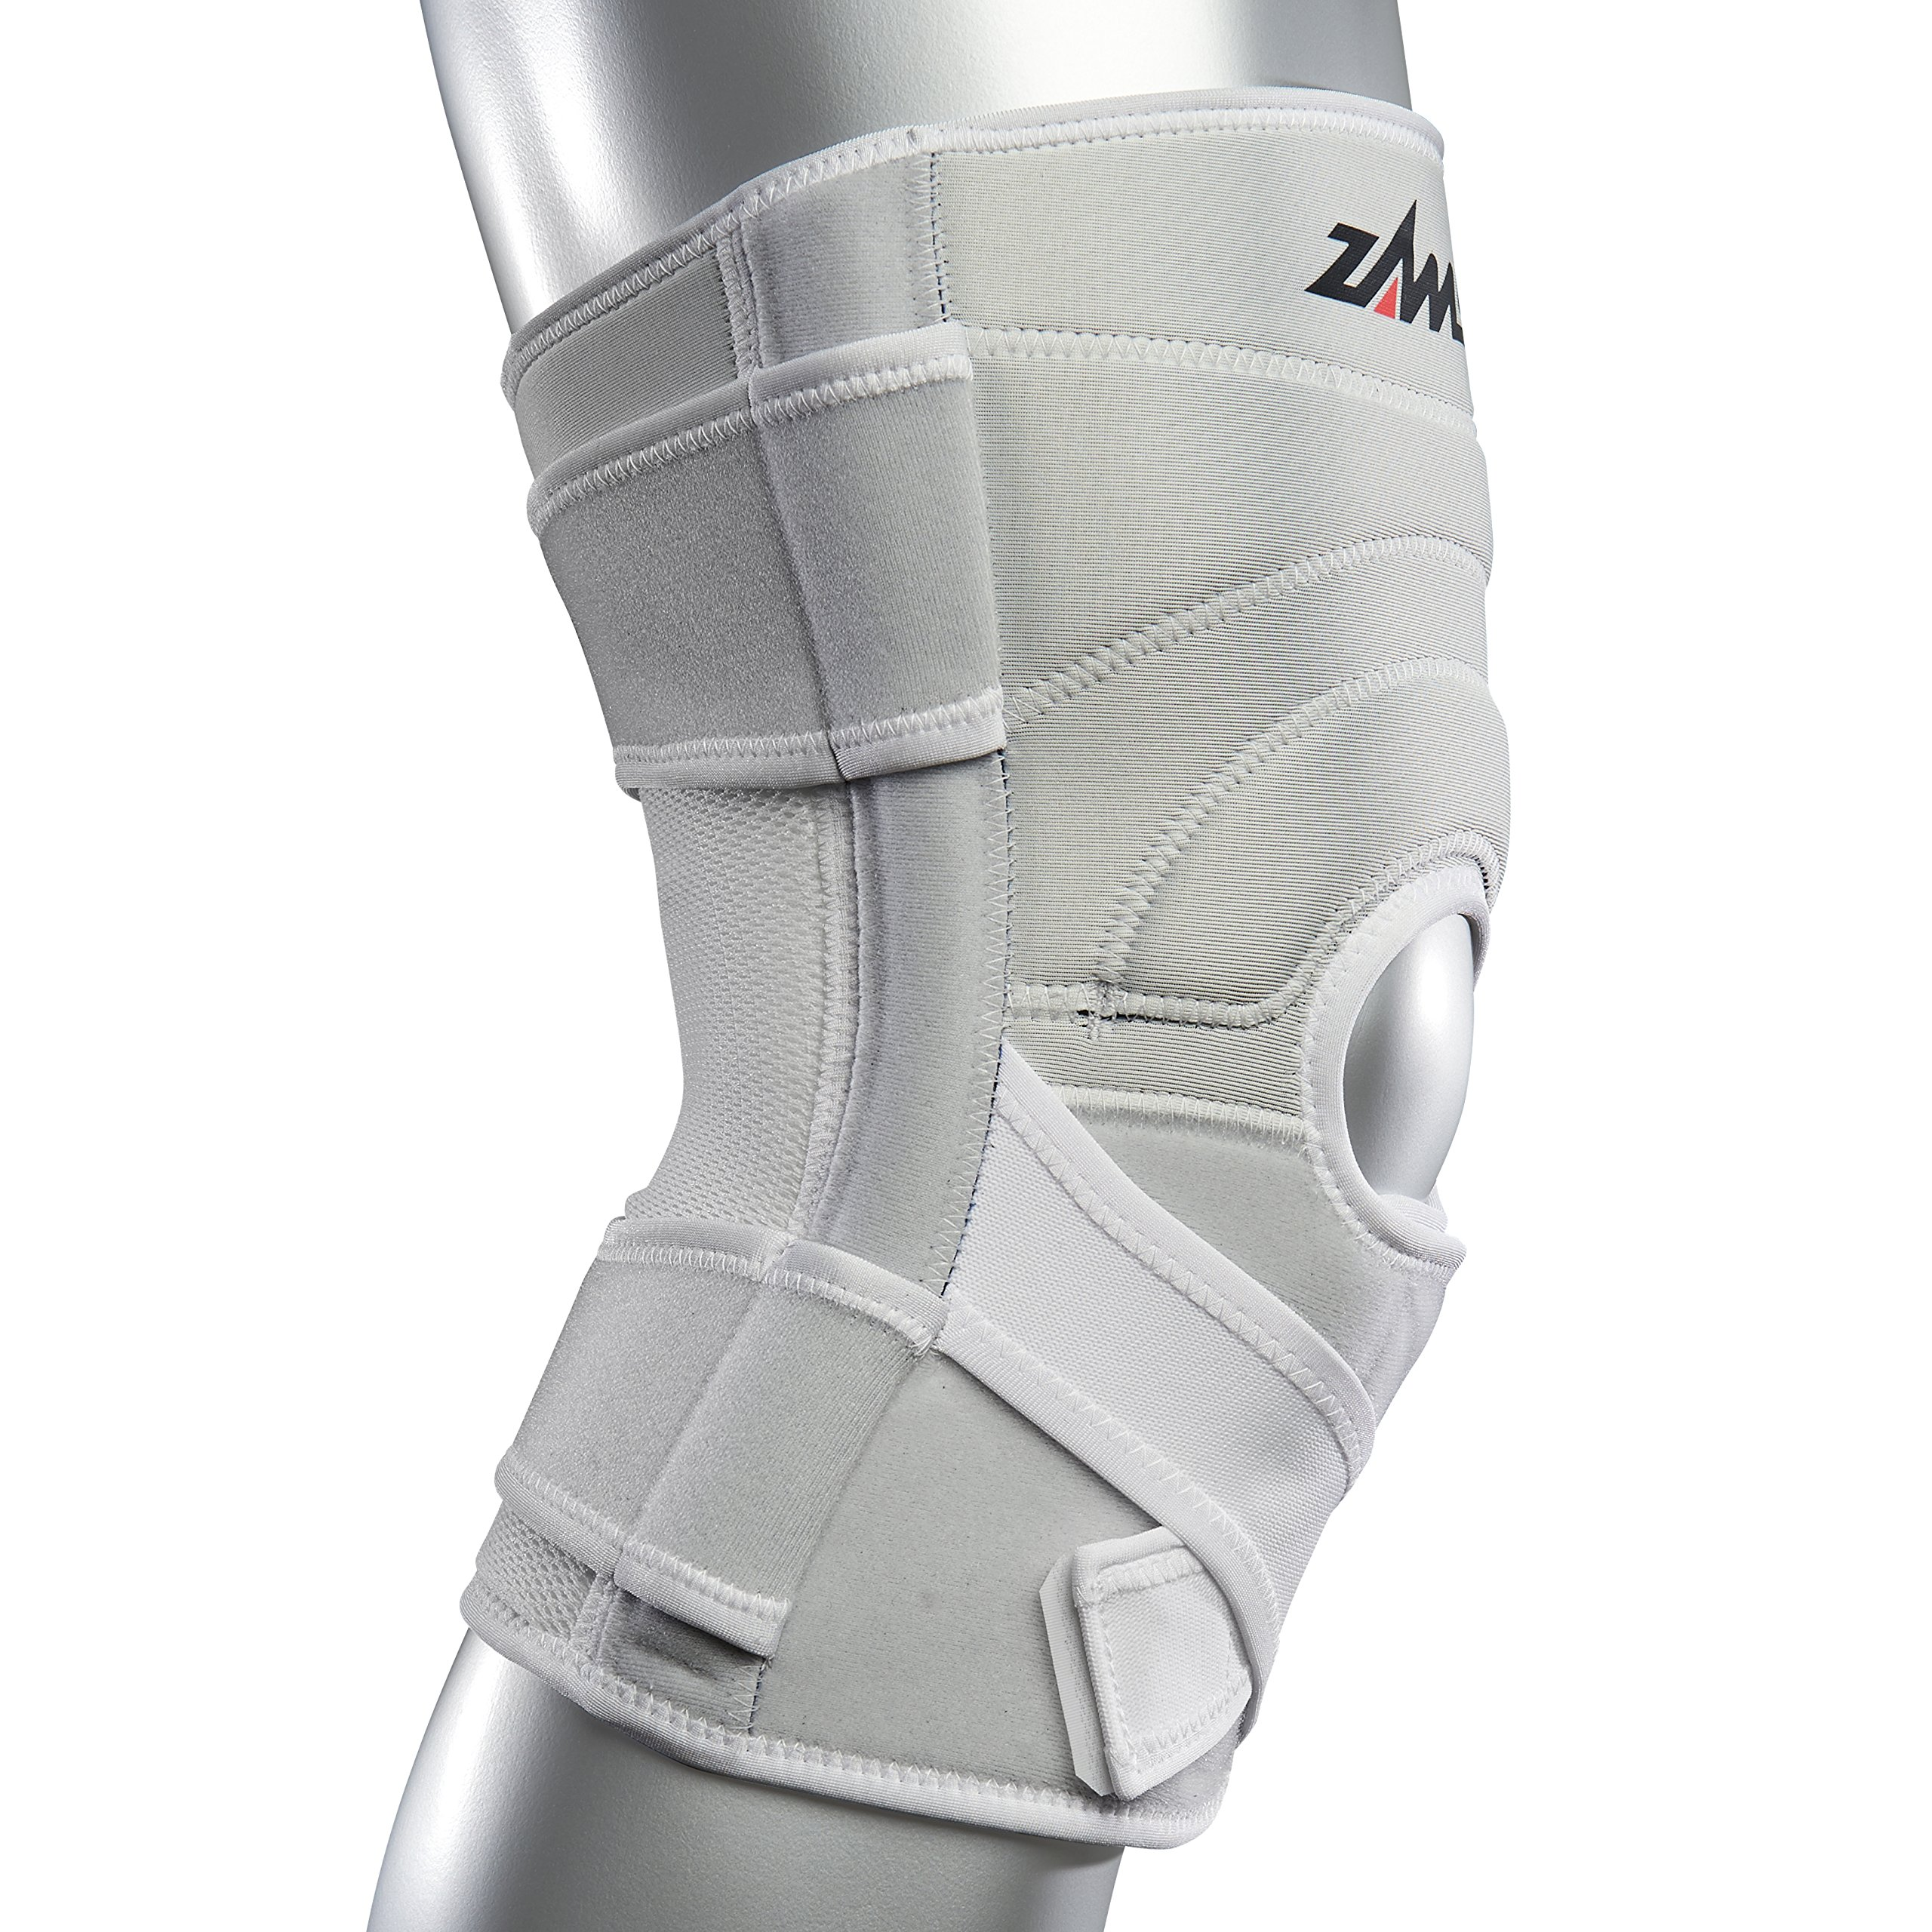 Zamst ZK-7 Knee Brace, White, X-Large by Zamst (Image #4)